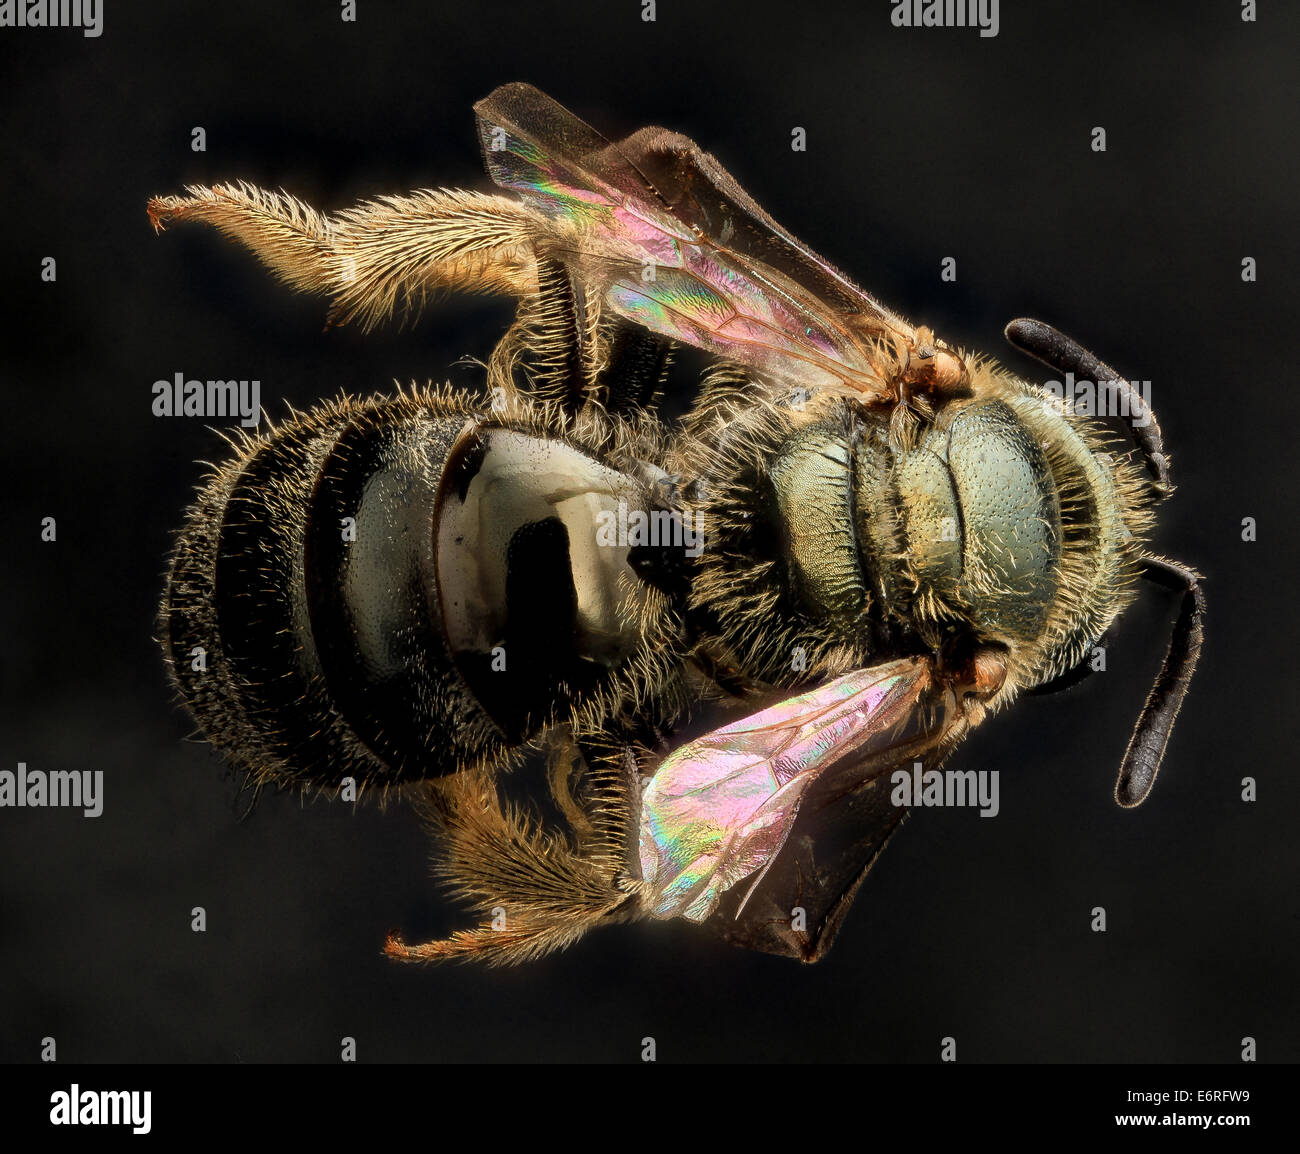 Lasioglossum gotham, F, Back, MD, Cecil County_2013-07-10-164508 ZS PMax_10047723023_o Of the many types of shiny - Stock Image